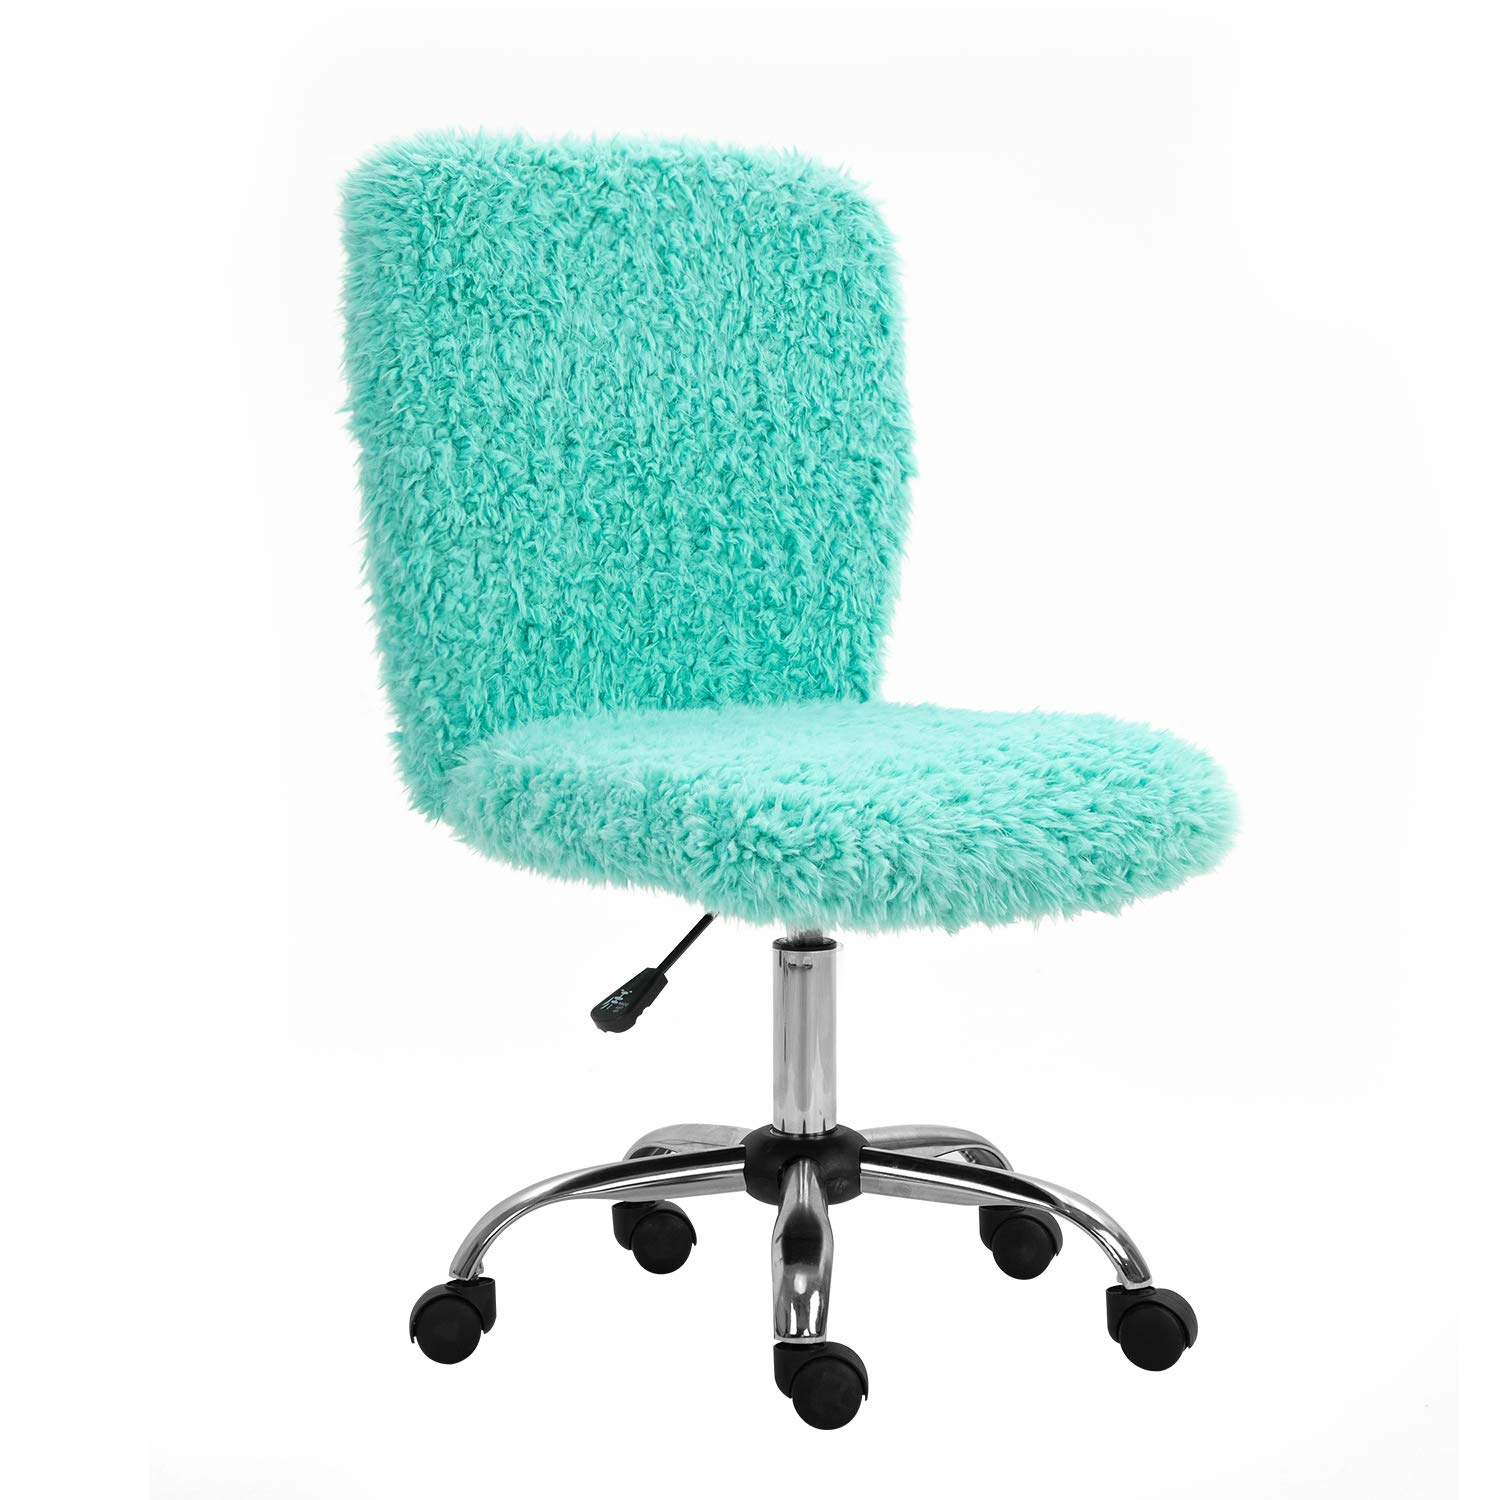 SEATZONE Faux Fur Desk Chair, Small Cute Fuzzy Desk Chair for Girls, Swivel Rolling Vanity Chair Height-Adjustable Office Chair Mint